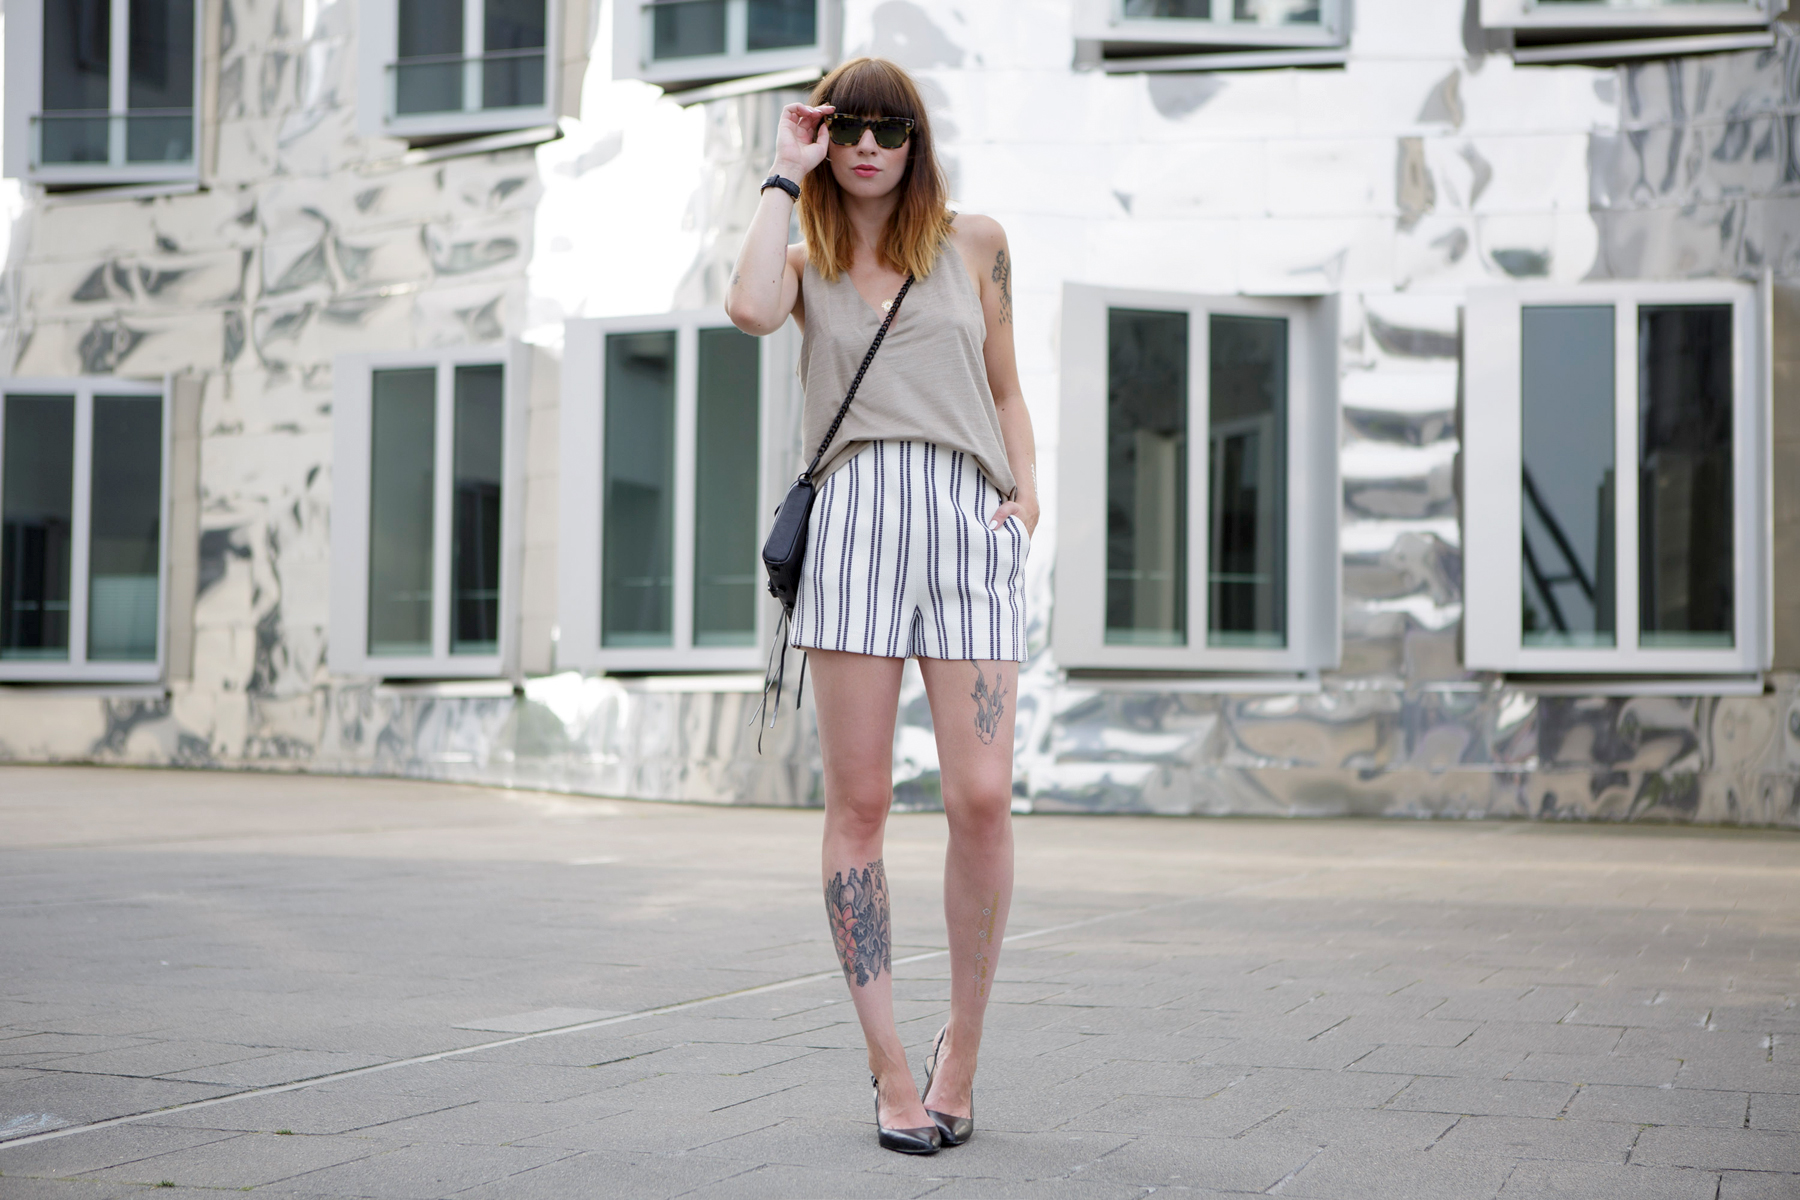 stiped shorts nude summer outfit styling düsseldorf blogger german girl rebecca minkoff shopbop ricarda schernus cats & dogs 3